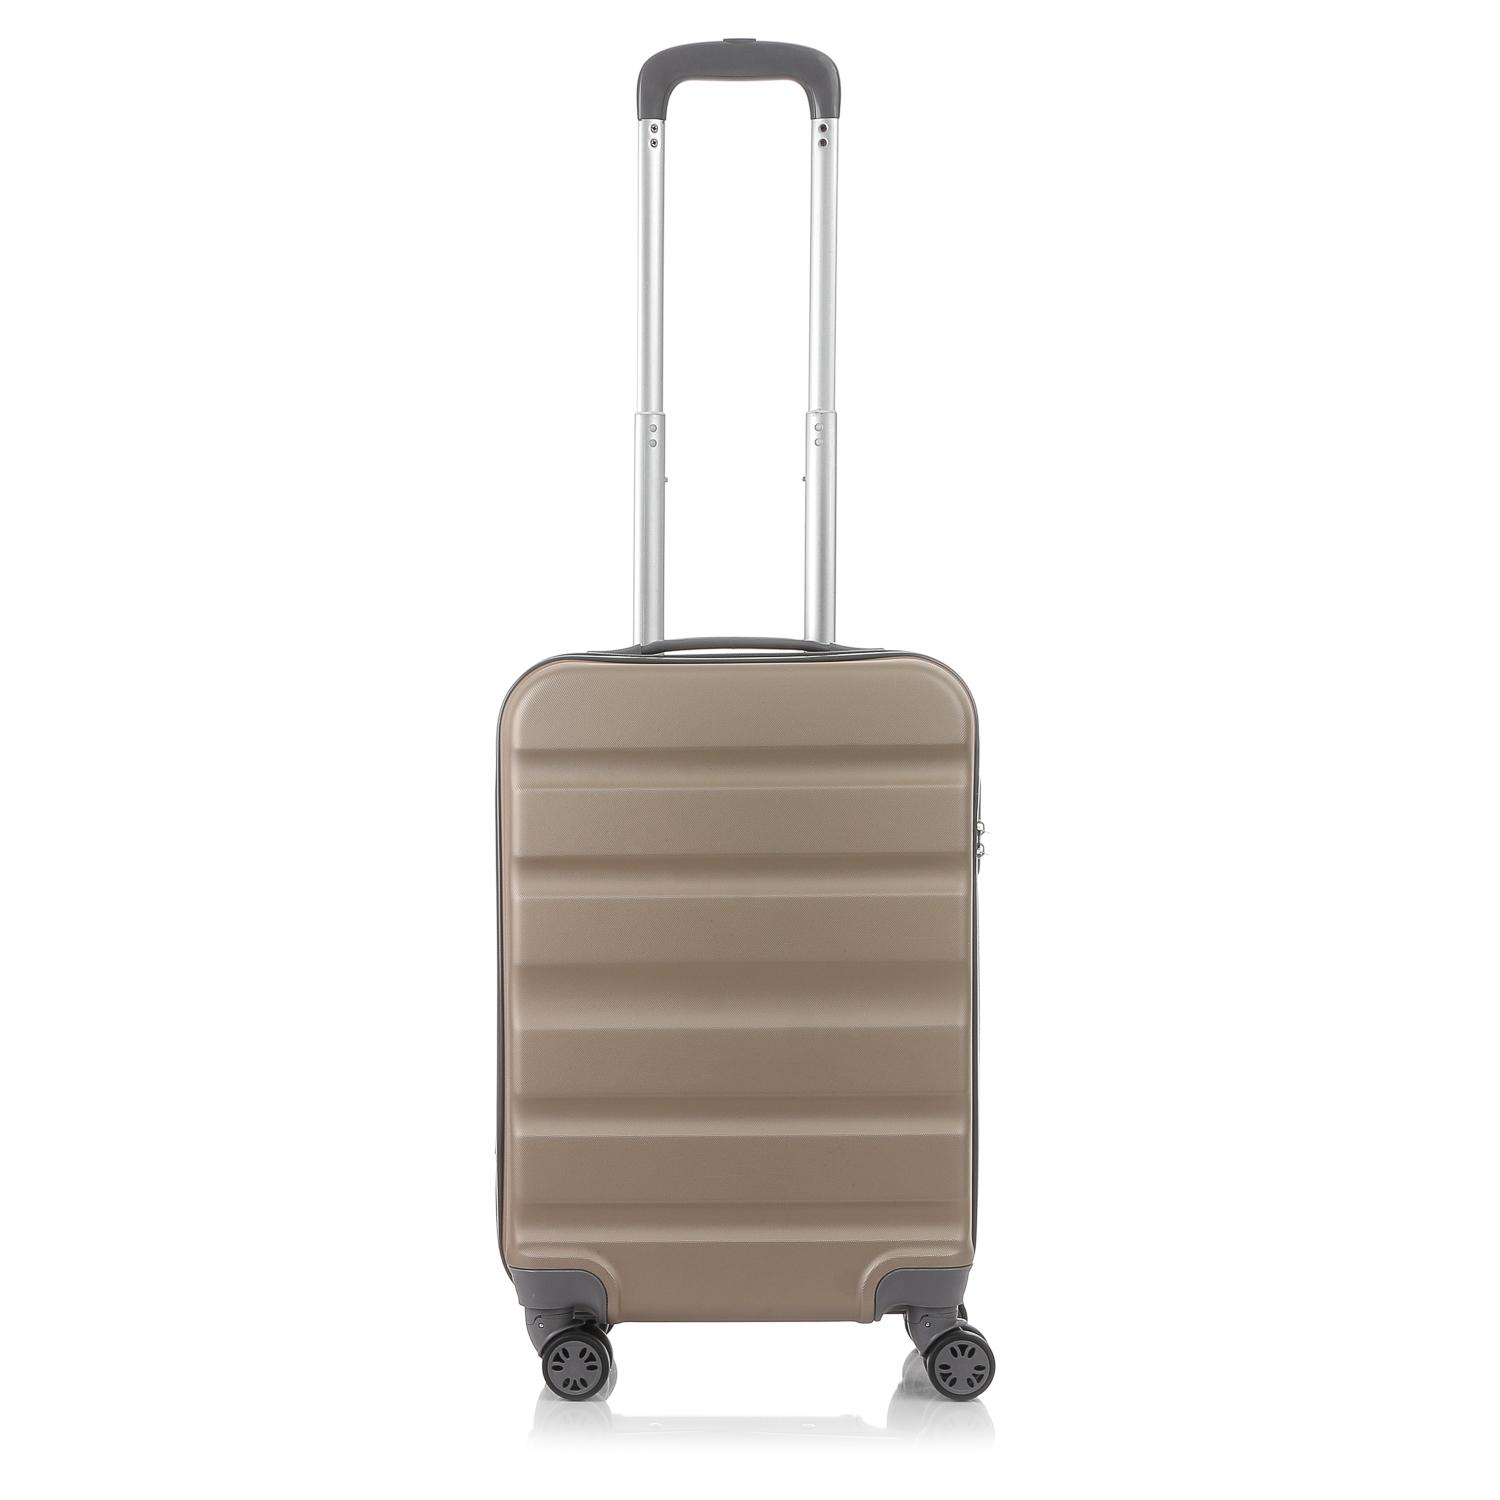 a25131defc3 Travel Basic Ciao Clyde Small Hard Case Luggage in Champagne